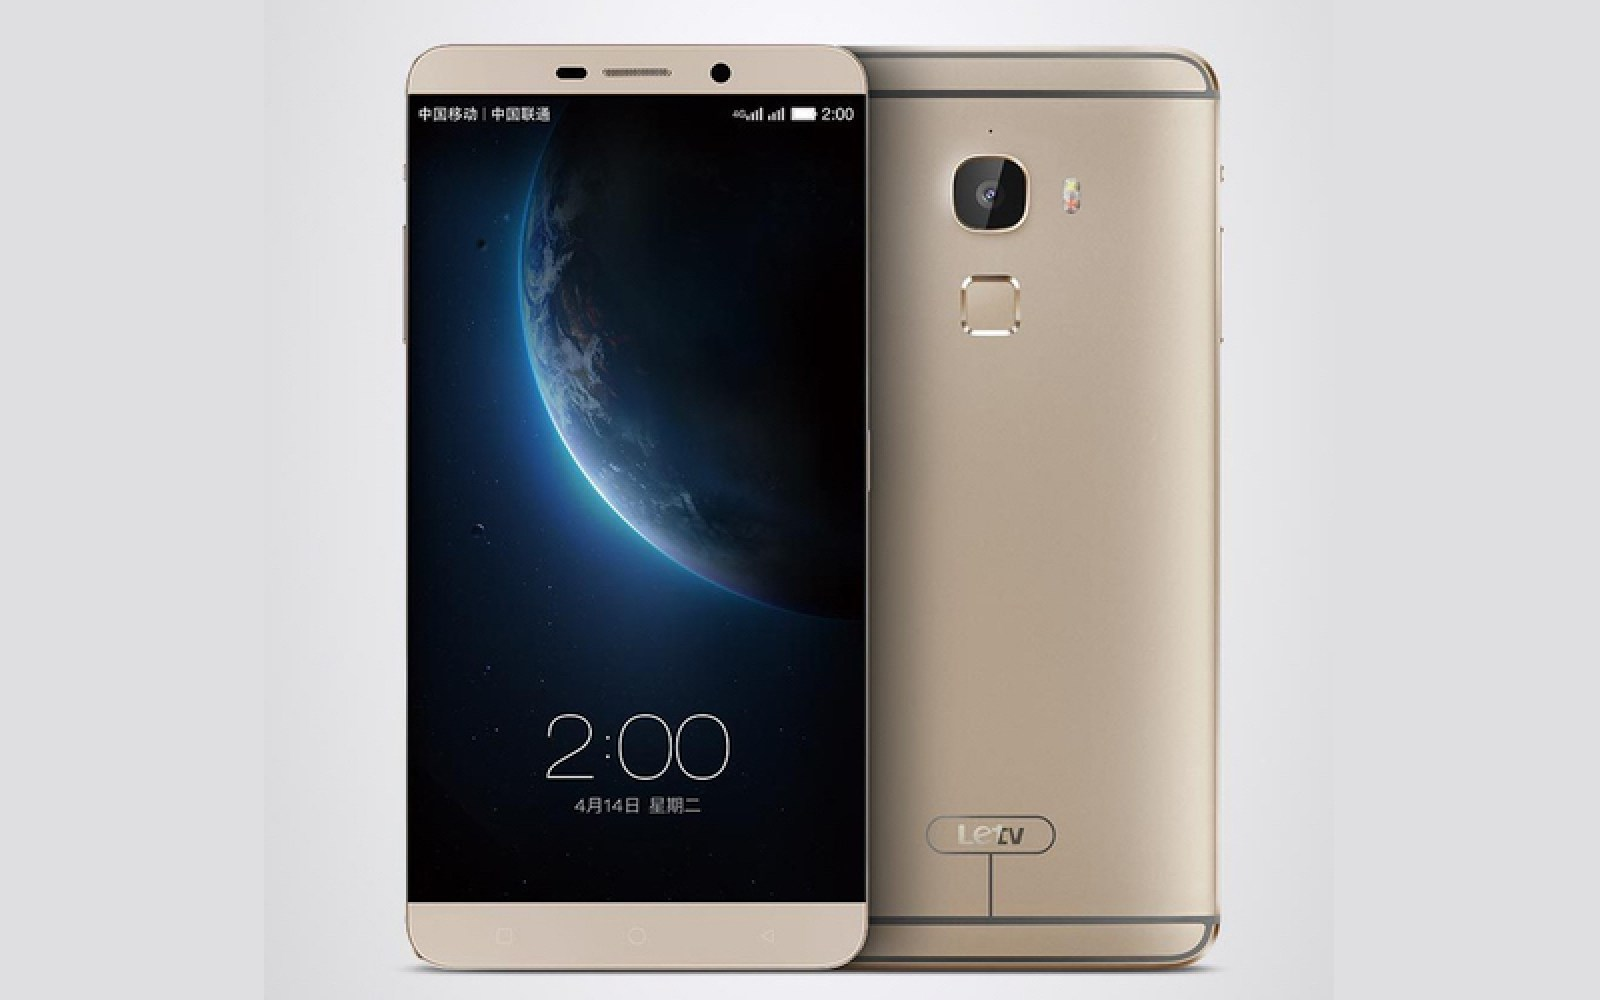 Letv expanding in to India with powerful, Quad HD Le Max phablet